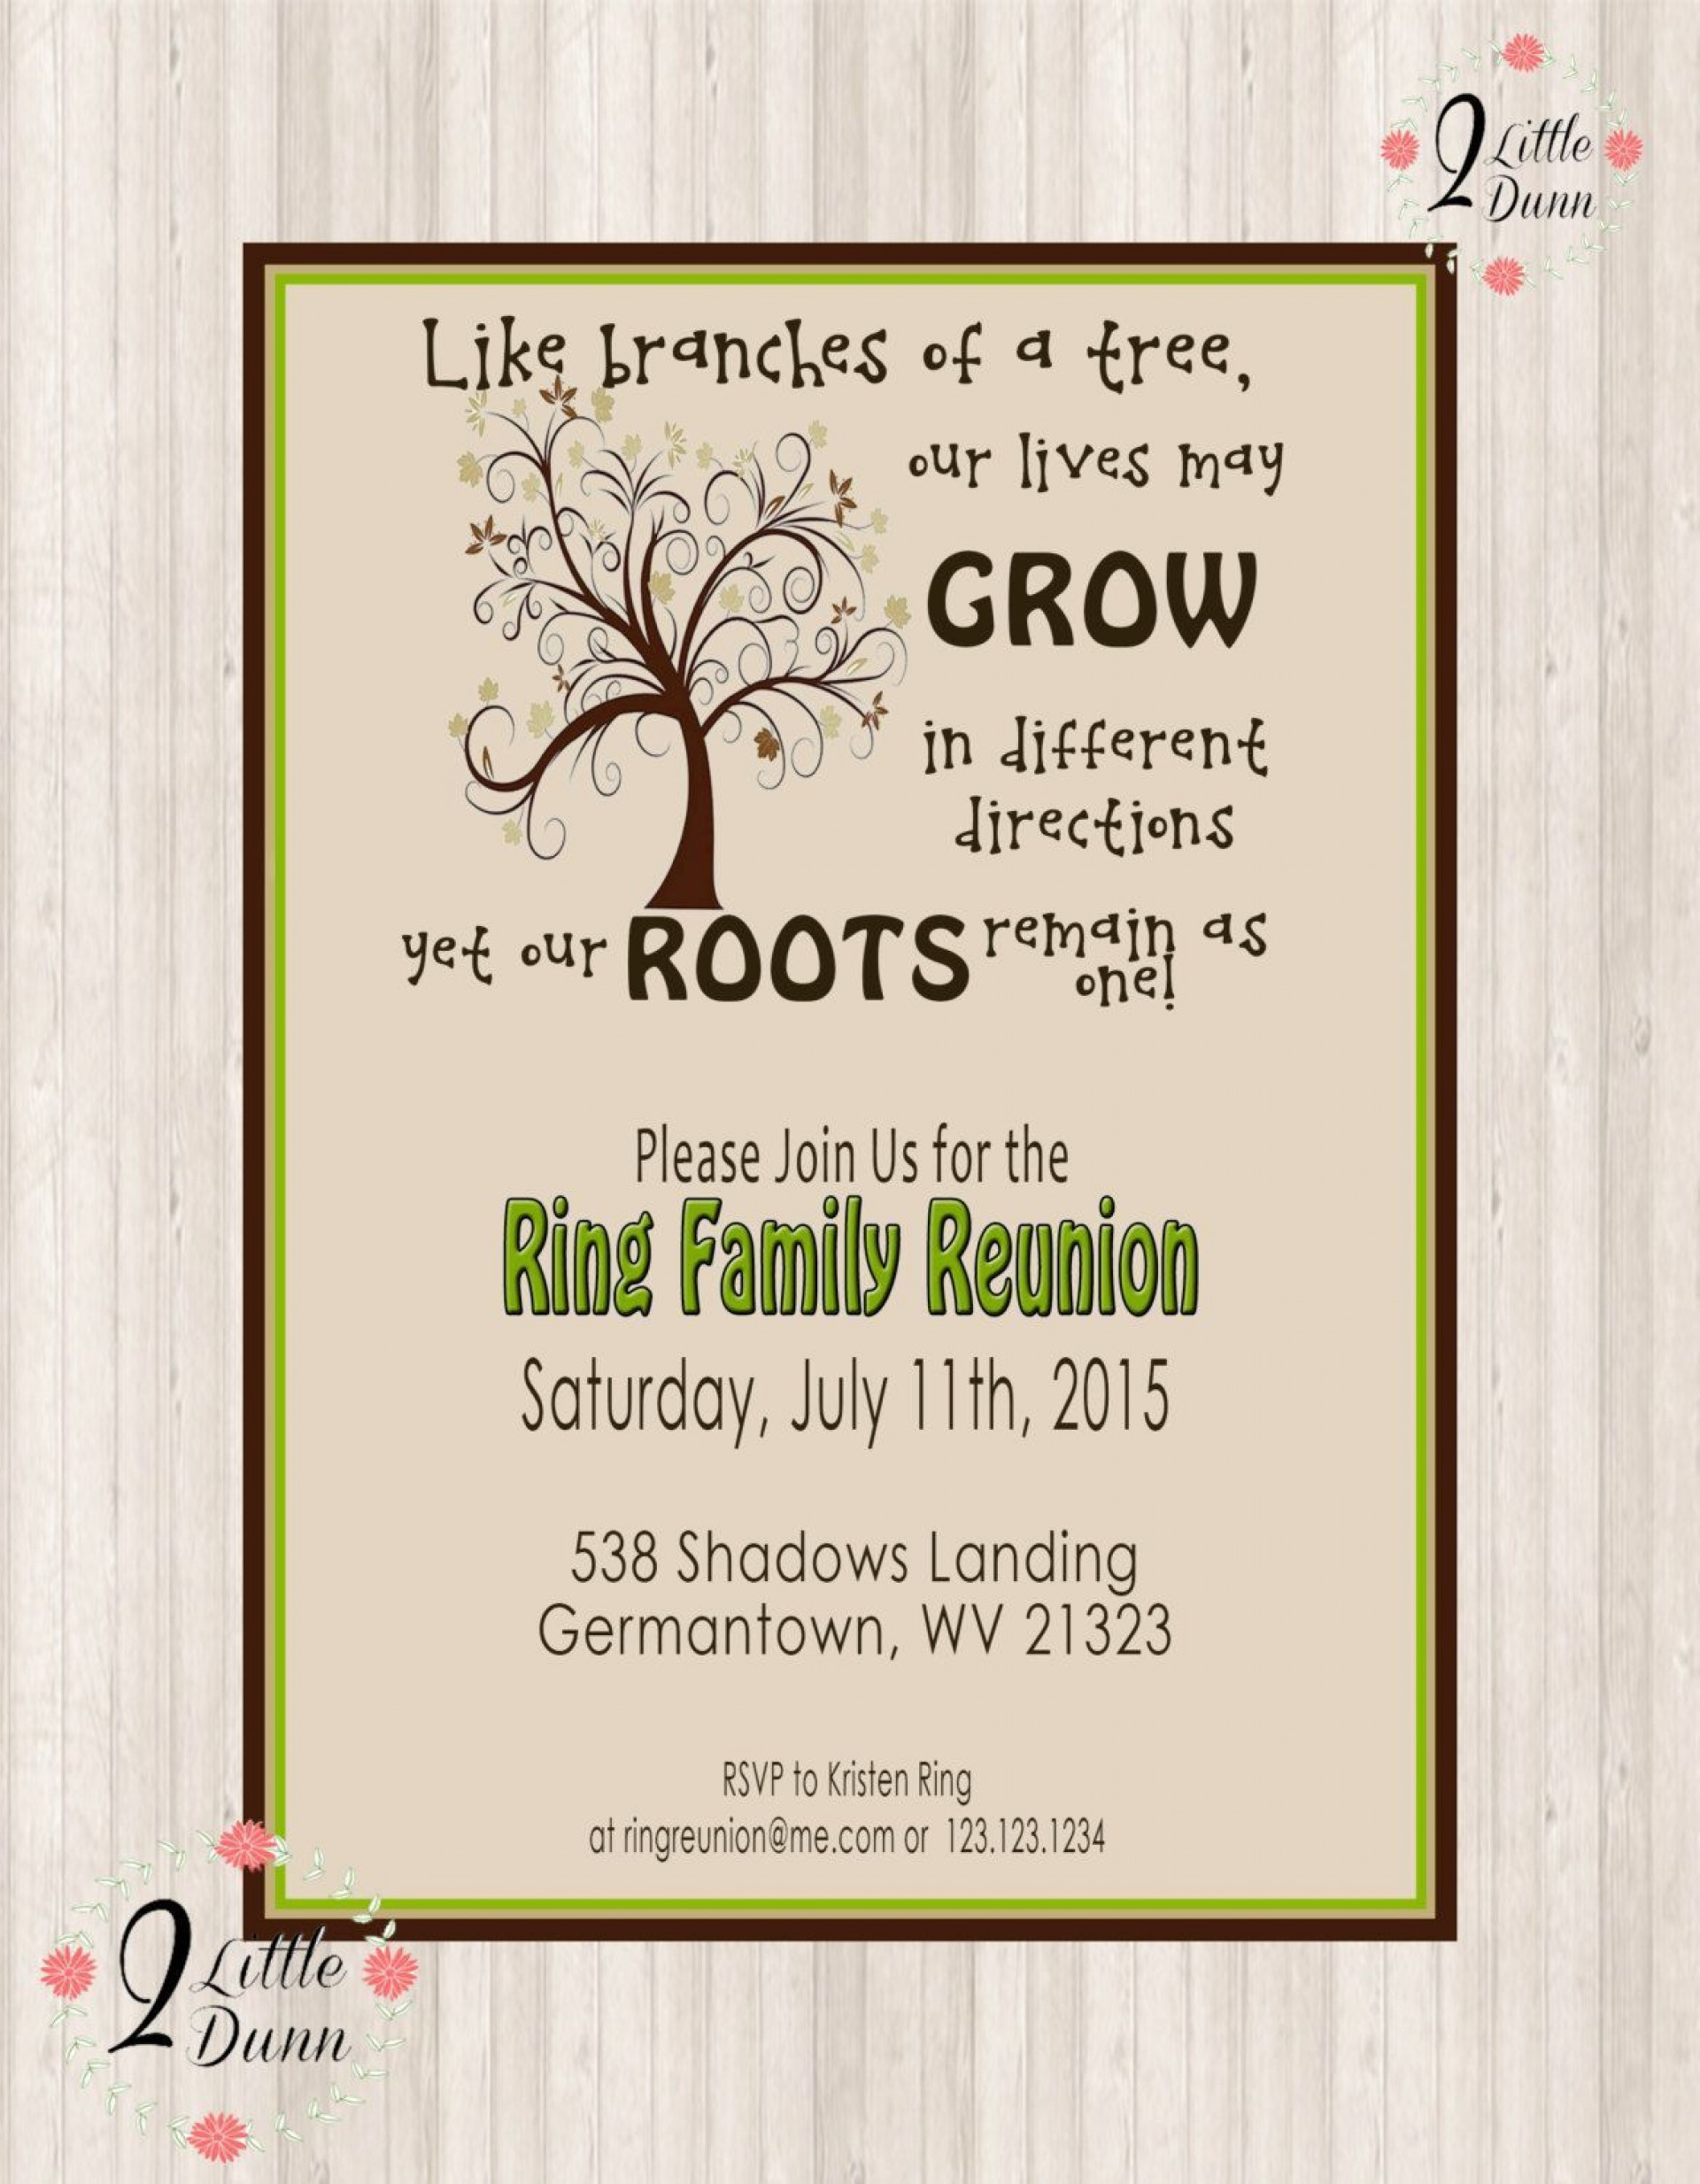 002 Fascinating Family Reunion Flyer Template Example  Templates Free For1920